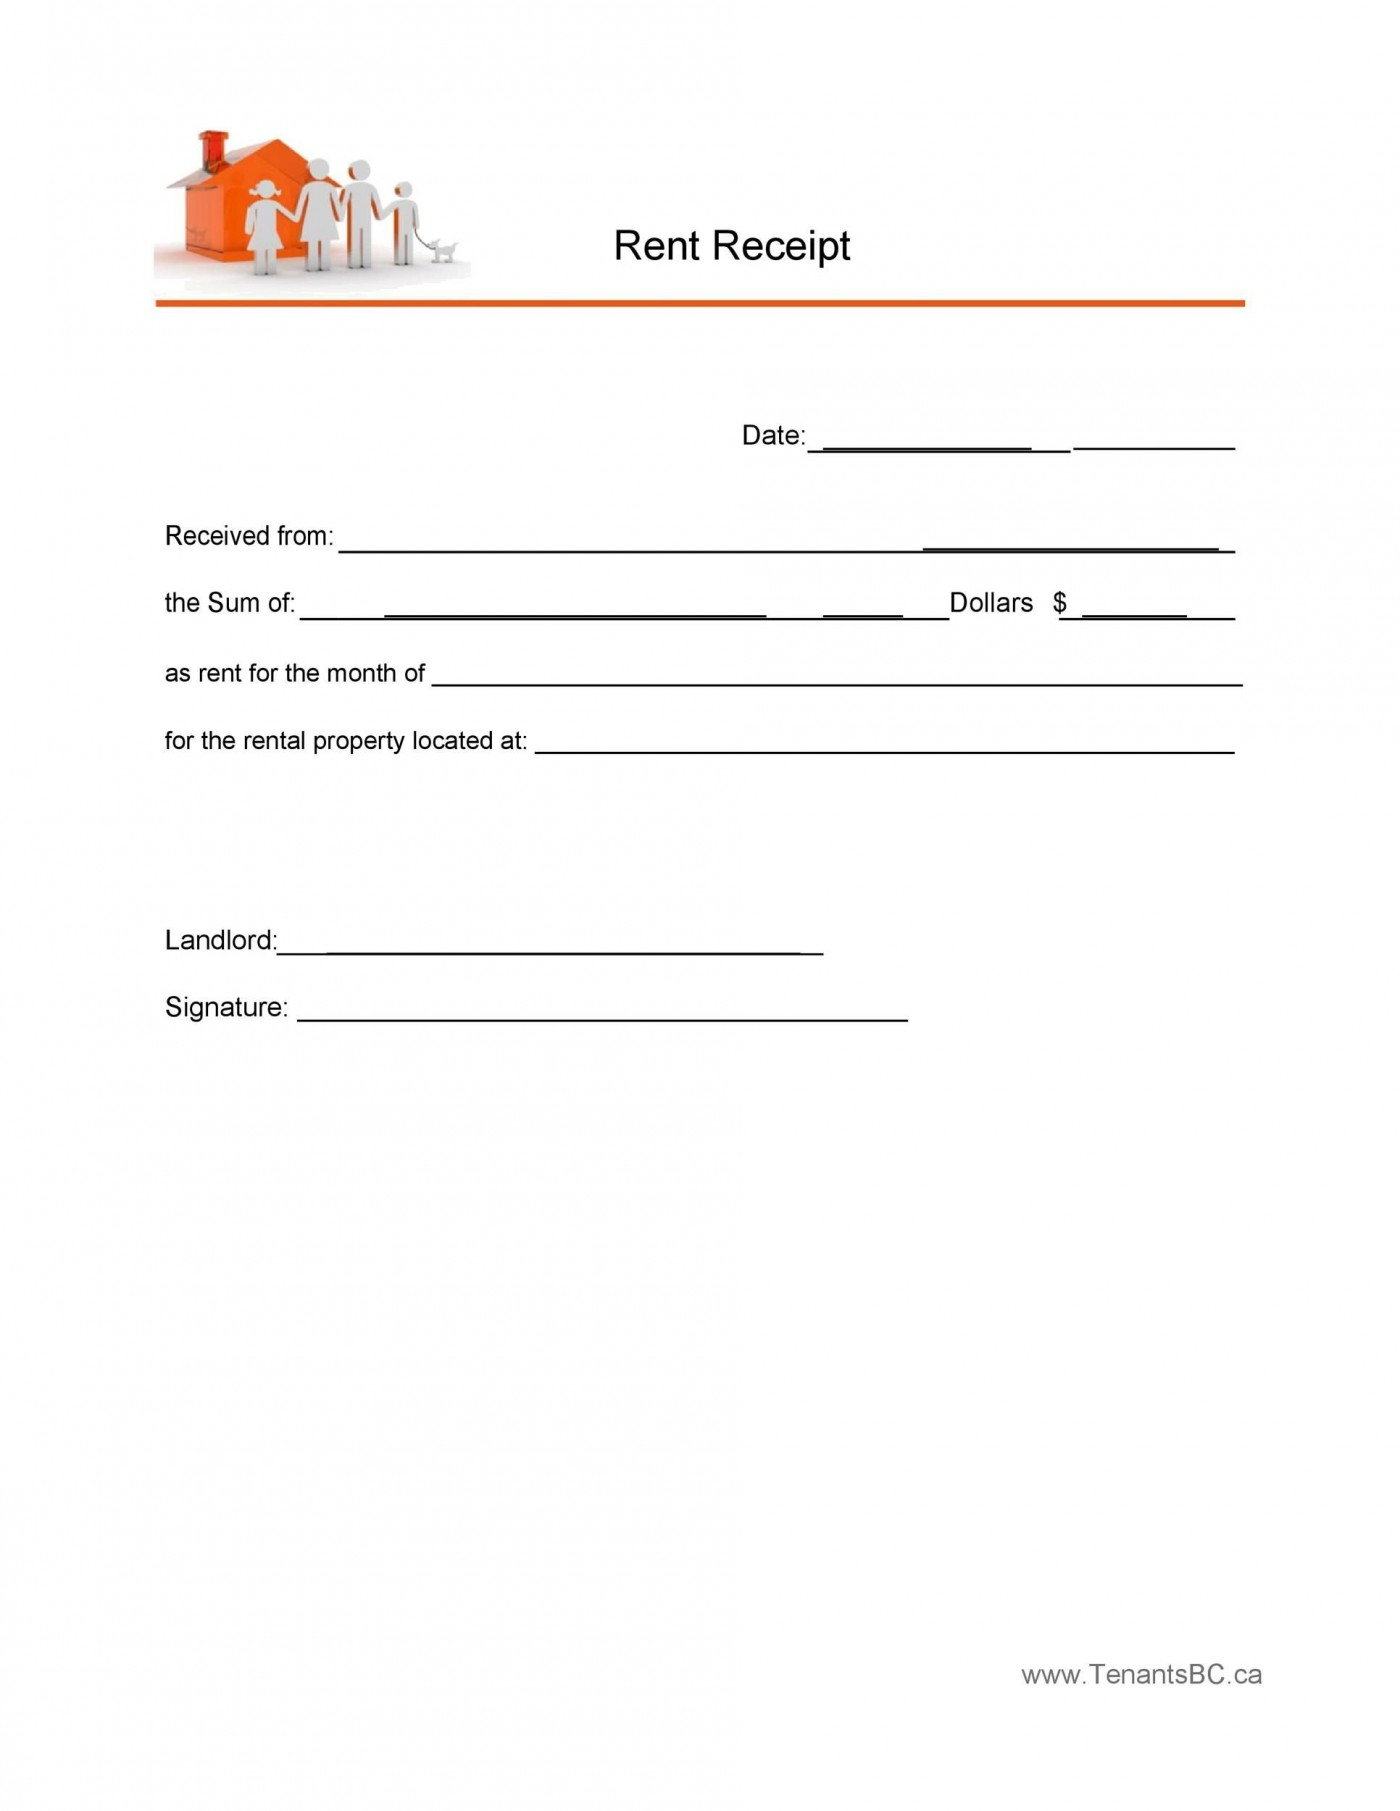 008 Surprising House Rent Receipt Sample Doc Highest Clarity  Template Word Document Free Download Format For Income Tax1400